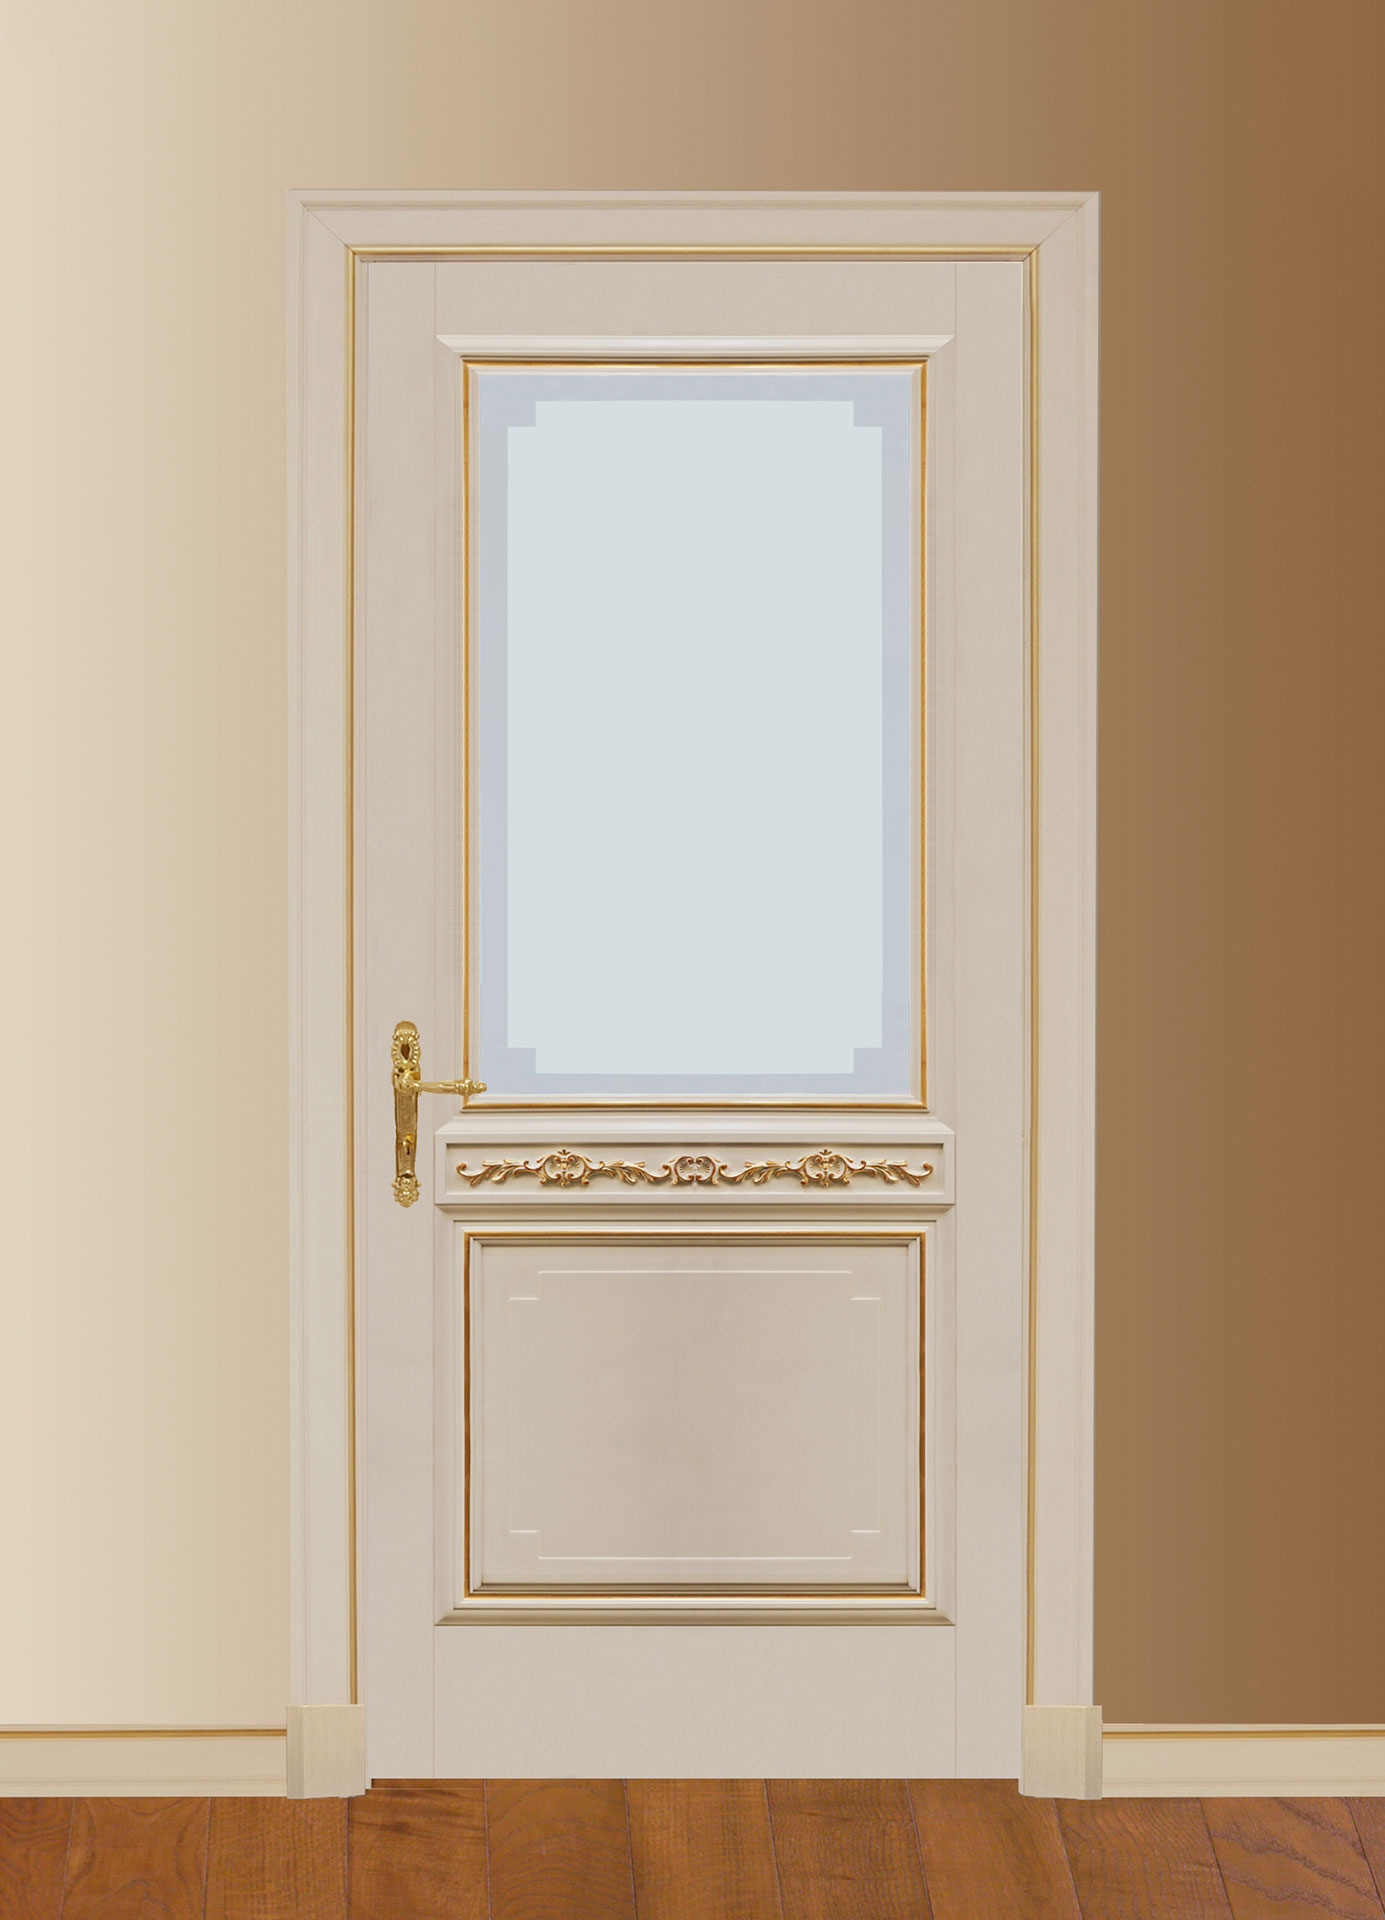 Faoma white wooden door with glass